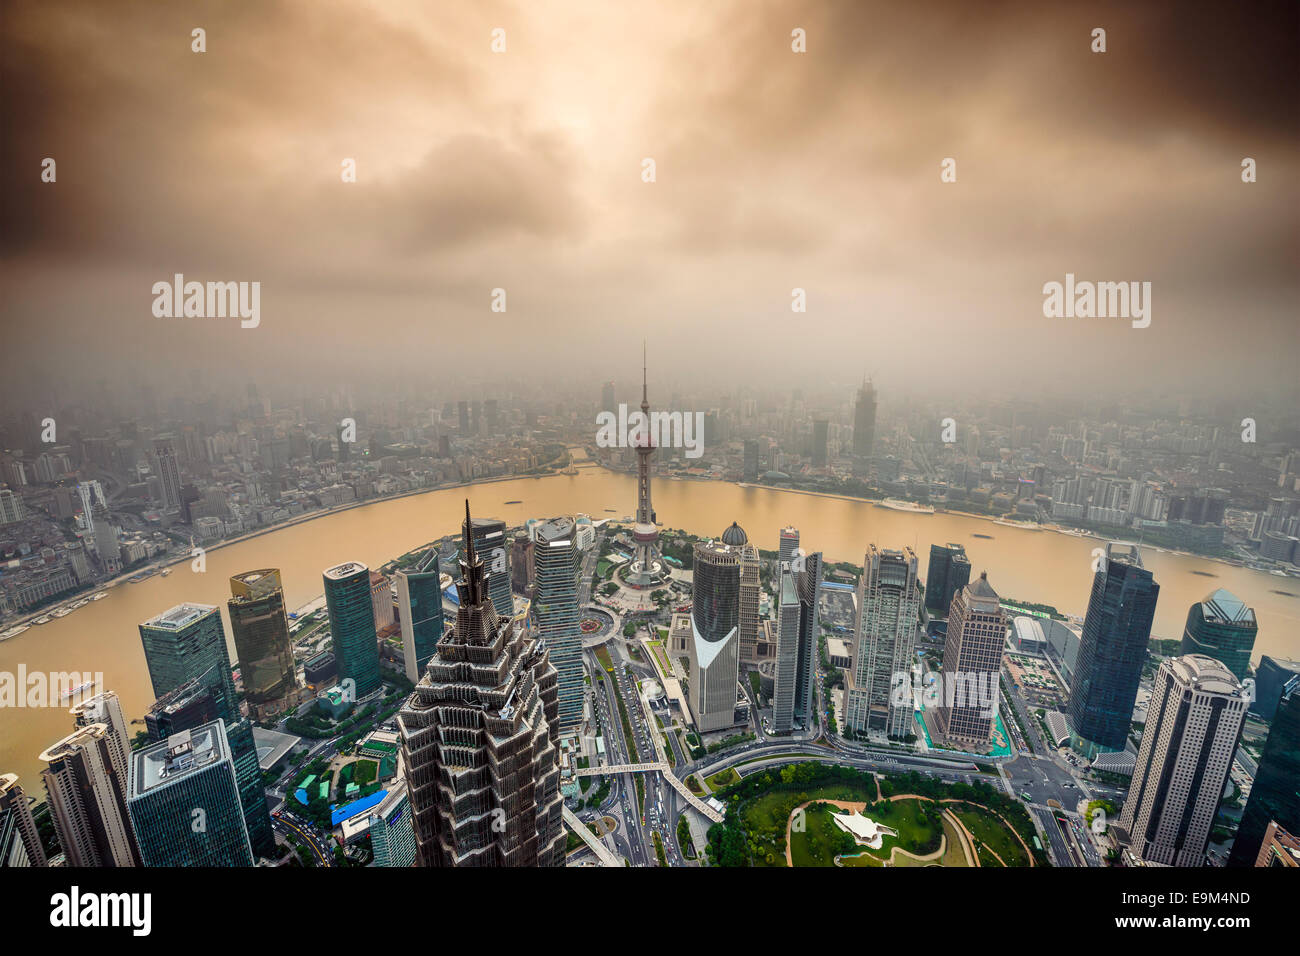 Shanghai, China City Skyline view over the Pudong Financial District. - Stock Image